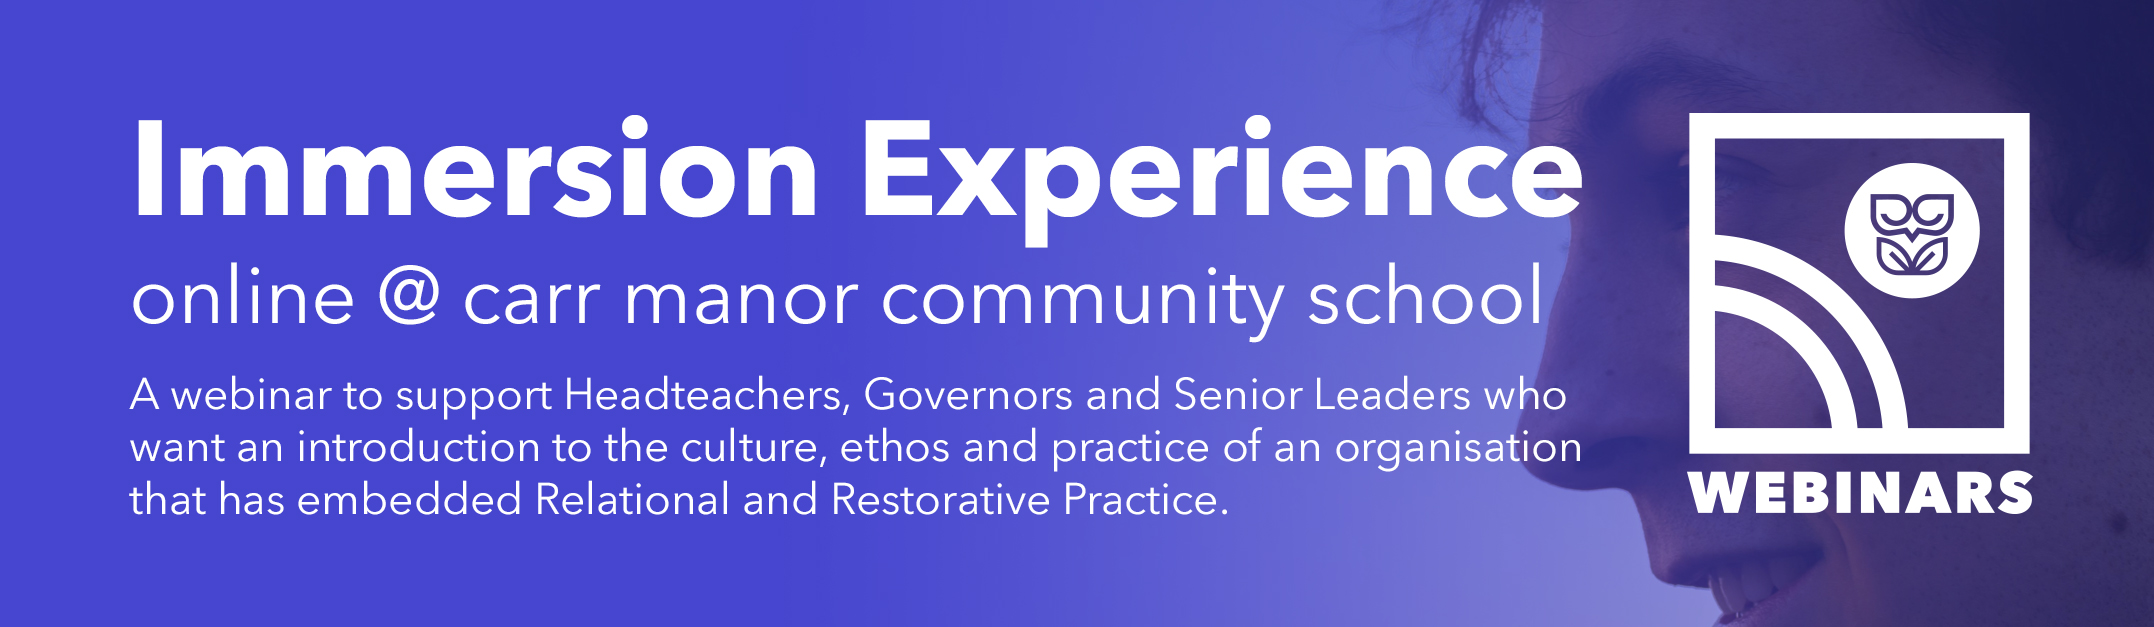 Relational and restorative practice - Immersion Experience